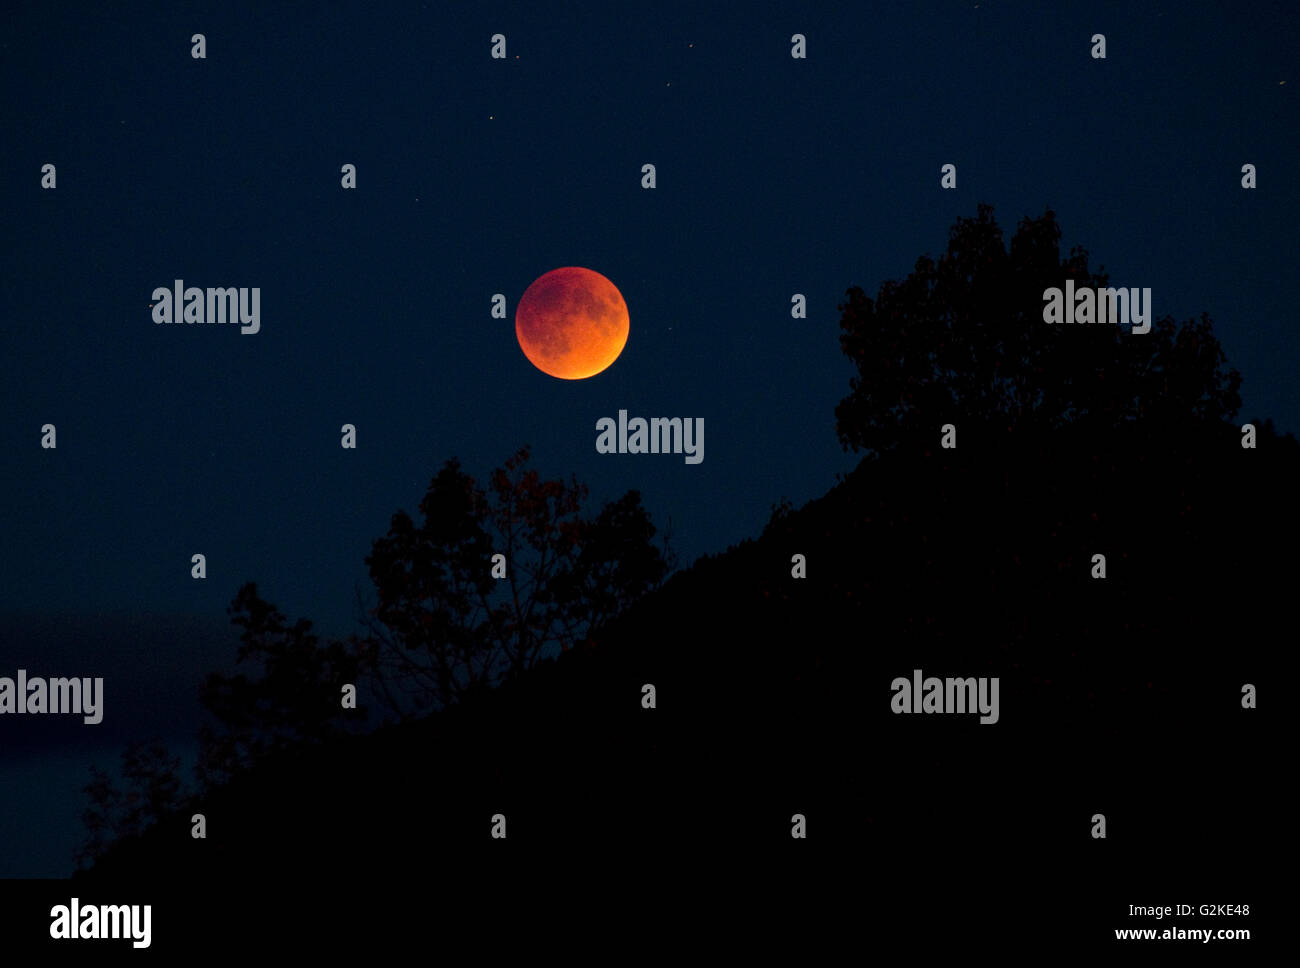 Blood moon rises over the mountains surrounding Enderby, in the Shuswap region of British Columbia, Canada - Stock Image